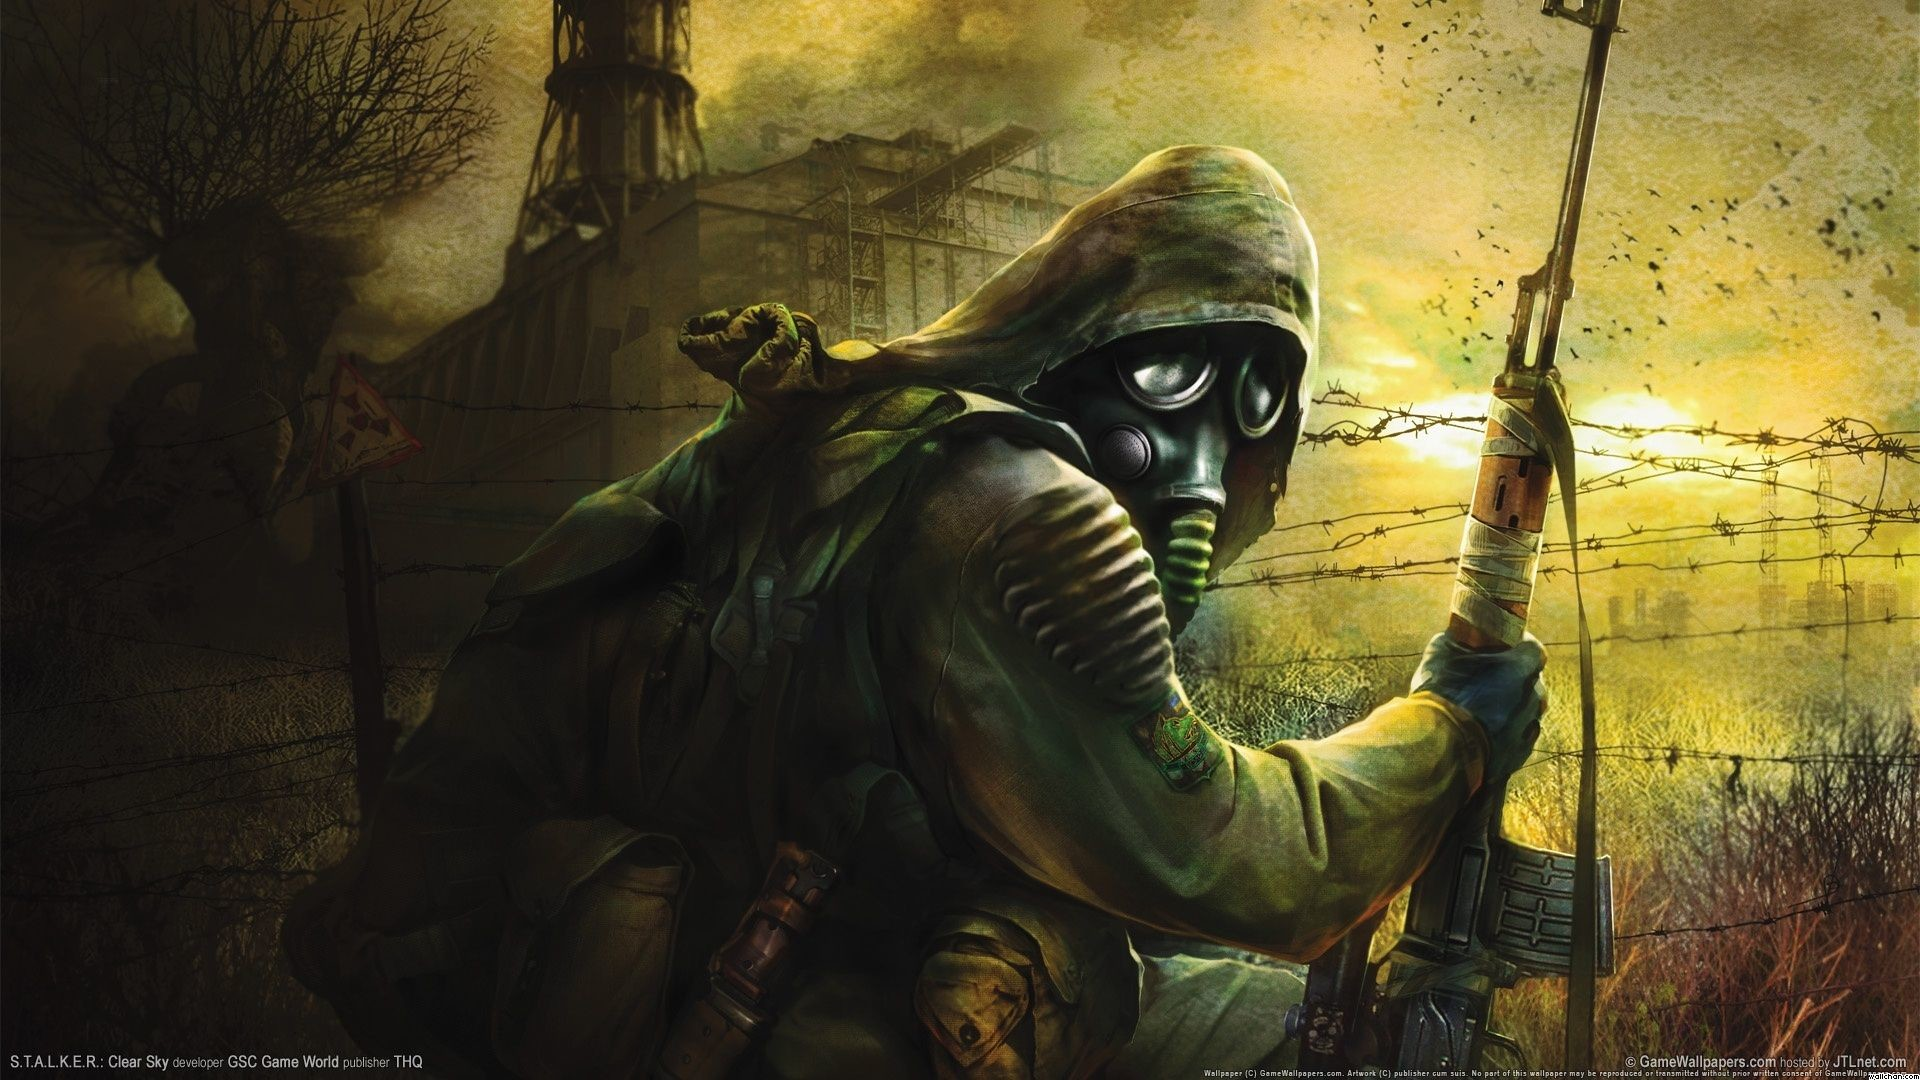 Res: 1920x1080, Gas Mask Soldier